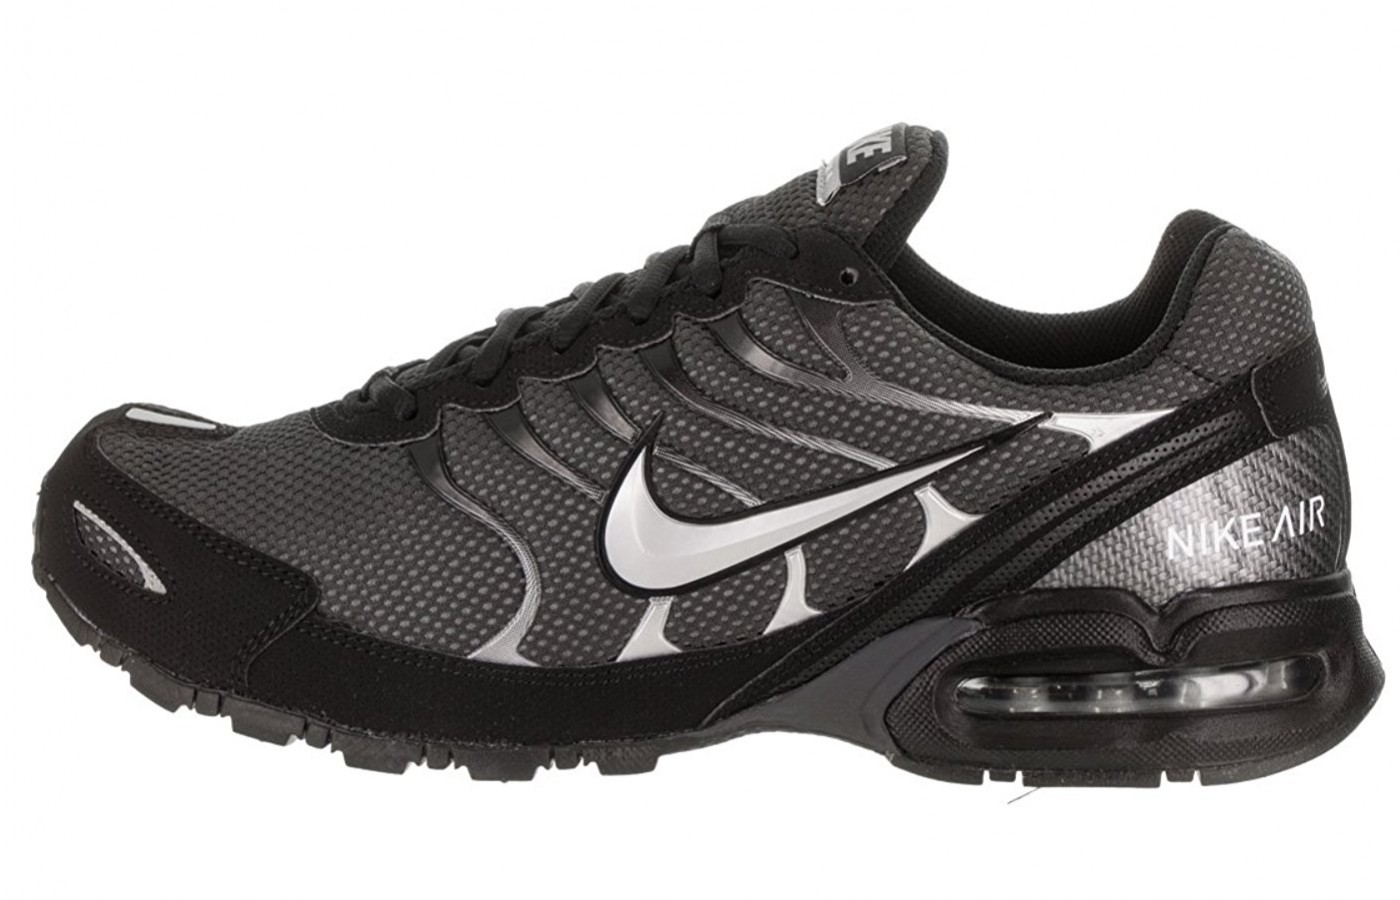 nike men's air max 2015 weight